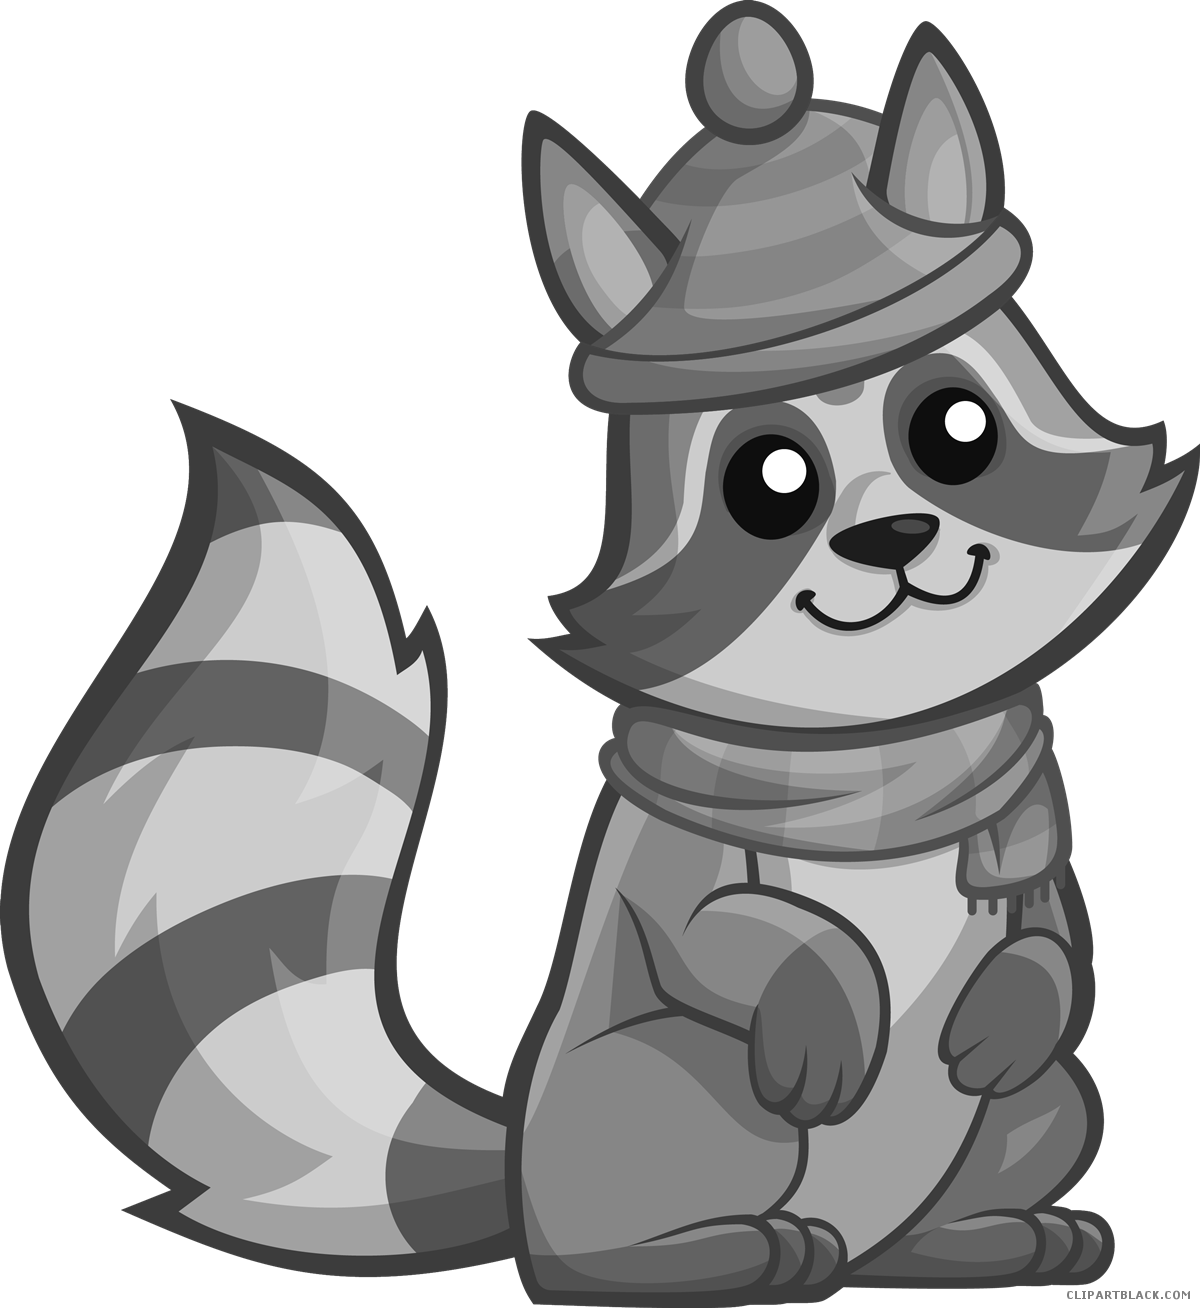 Raccoon page of clipartblack. Racoon clipart gray